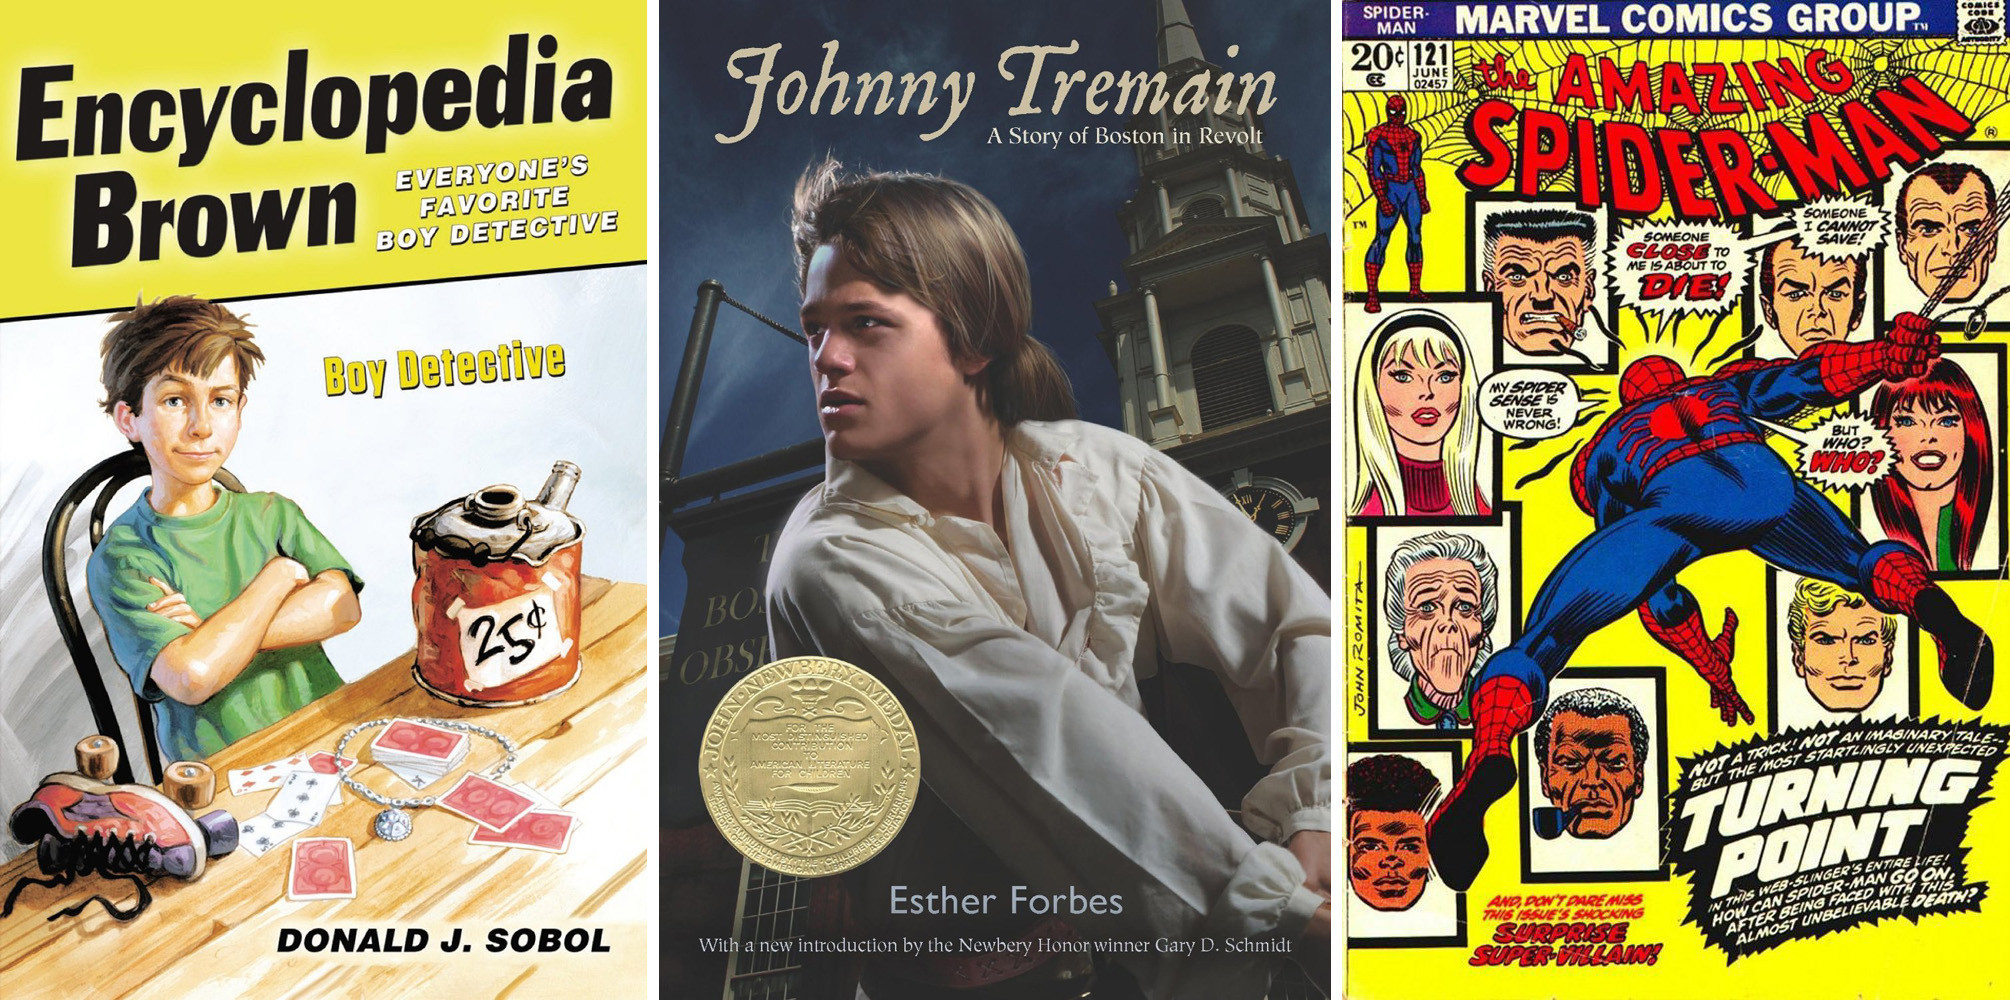 Encyclopedia Brown. Johnny Tremain and Spider-Man are just three characters that have influenced Chicago-area authors when they were kids.